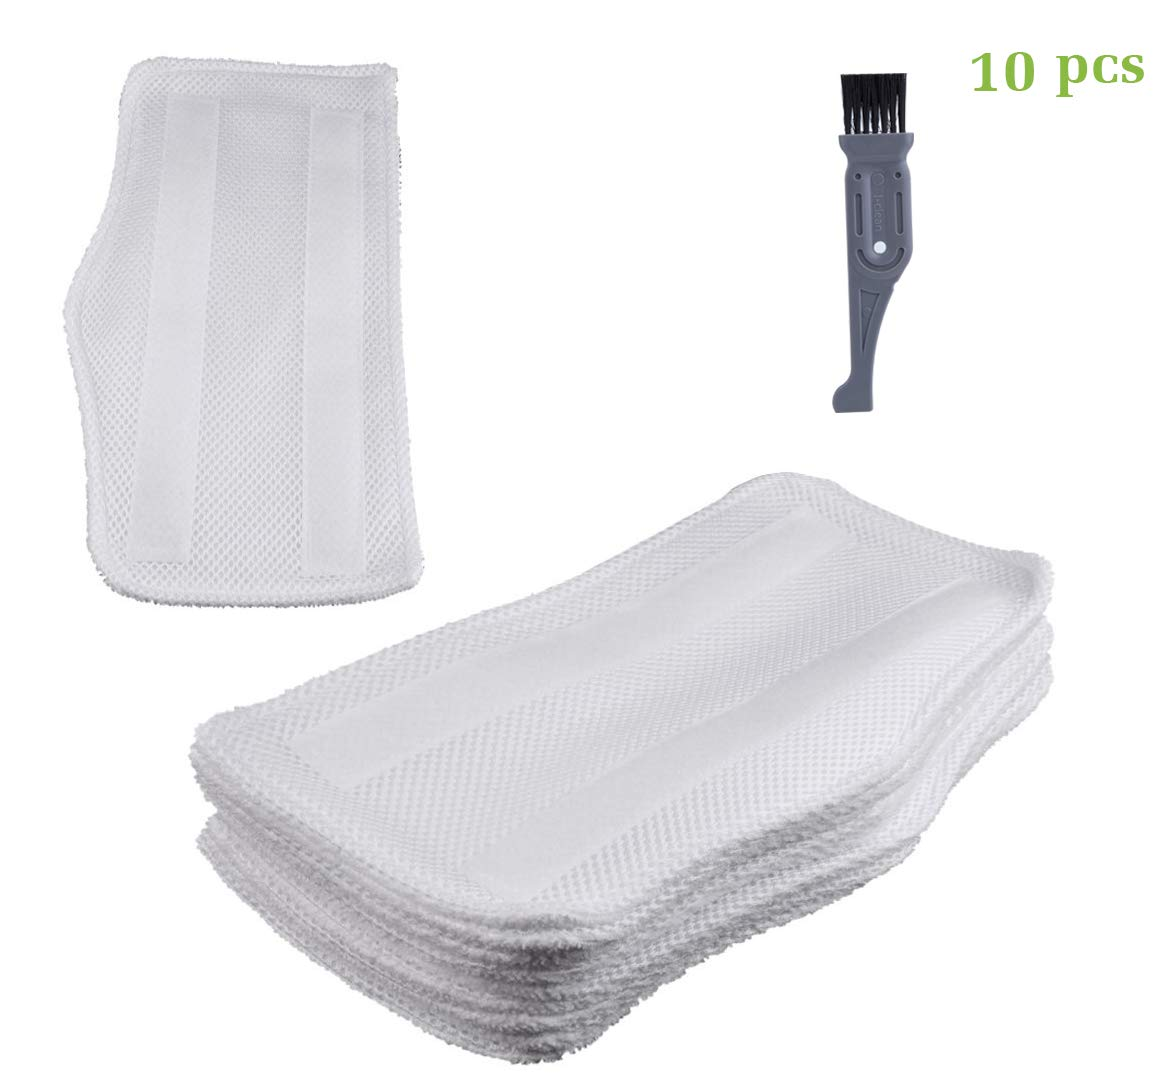 I clean Microfiber Replacement Pads compatible Shark Steam Euro-Pro S3101 S3250 S3251 S3202 S3111 Vacuum Cleaner,Replace for Steam Mop kit 10 Pcs